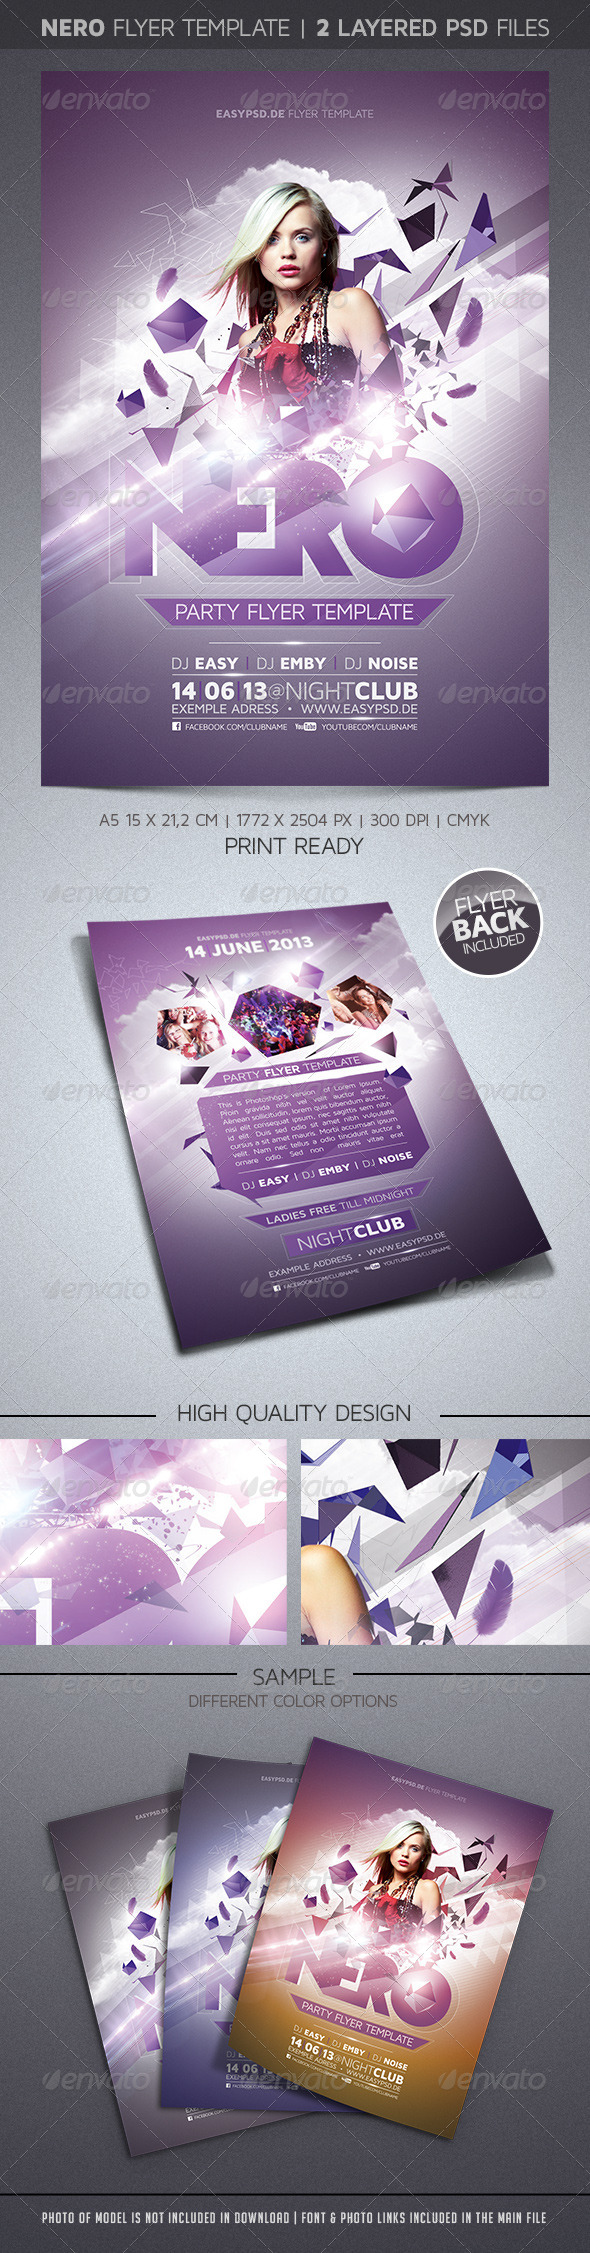 Nero Flyer Template - Clubs & Parties Events